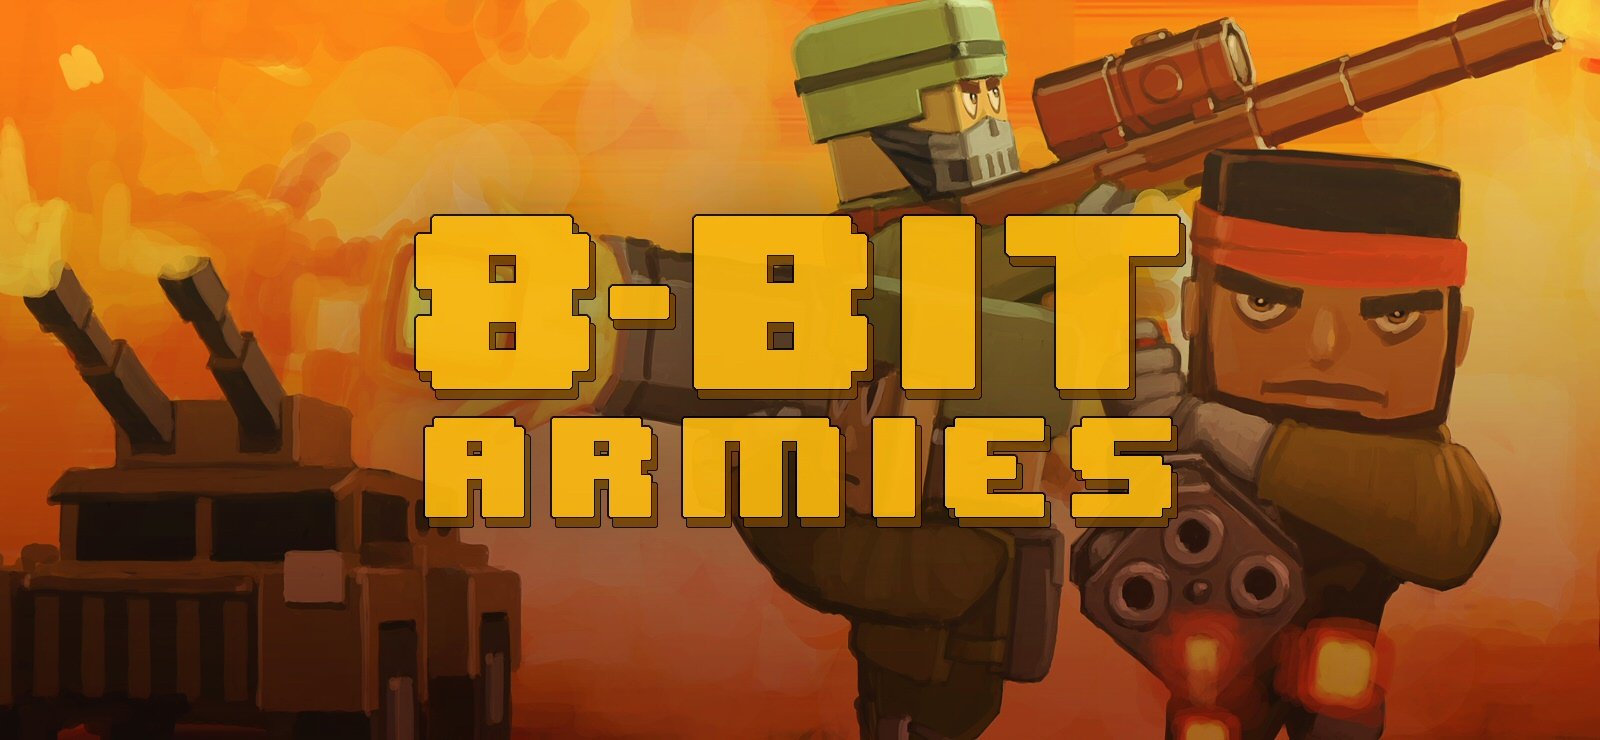 Bit Armies - Minecraft classic spielen ohne download